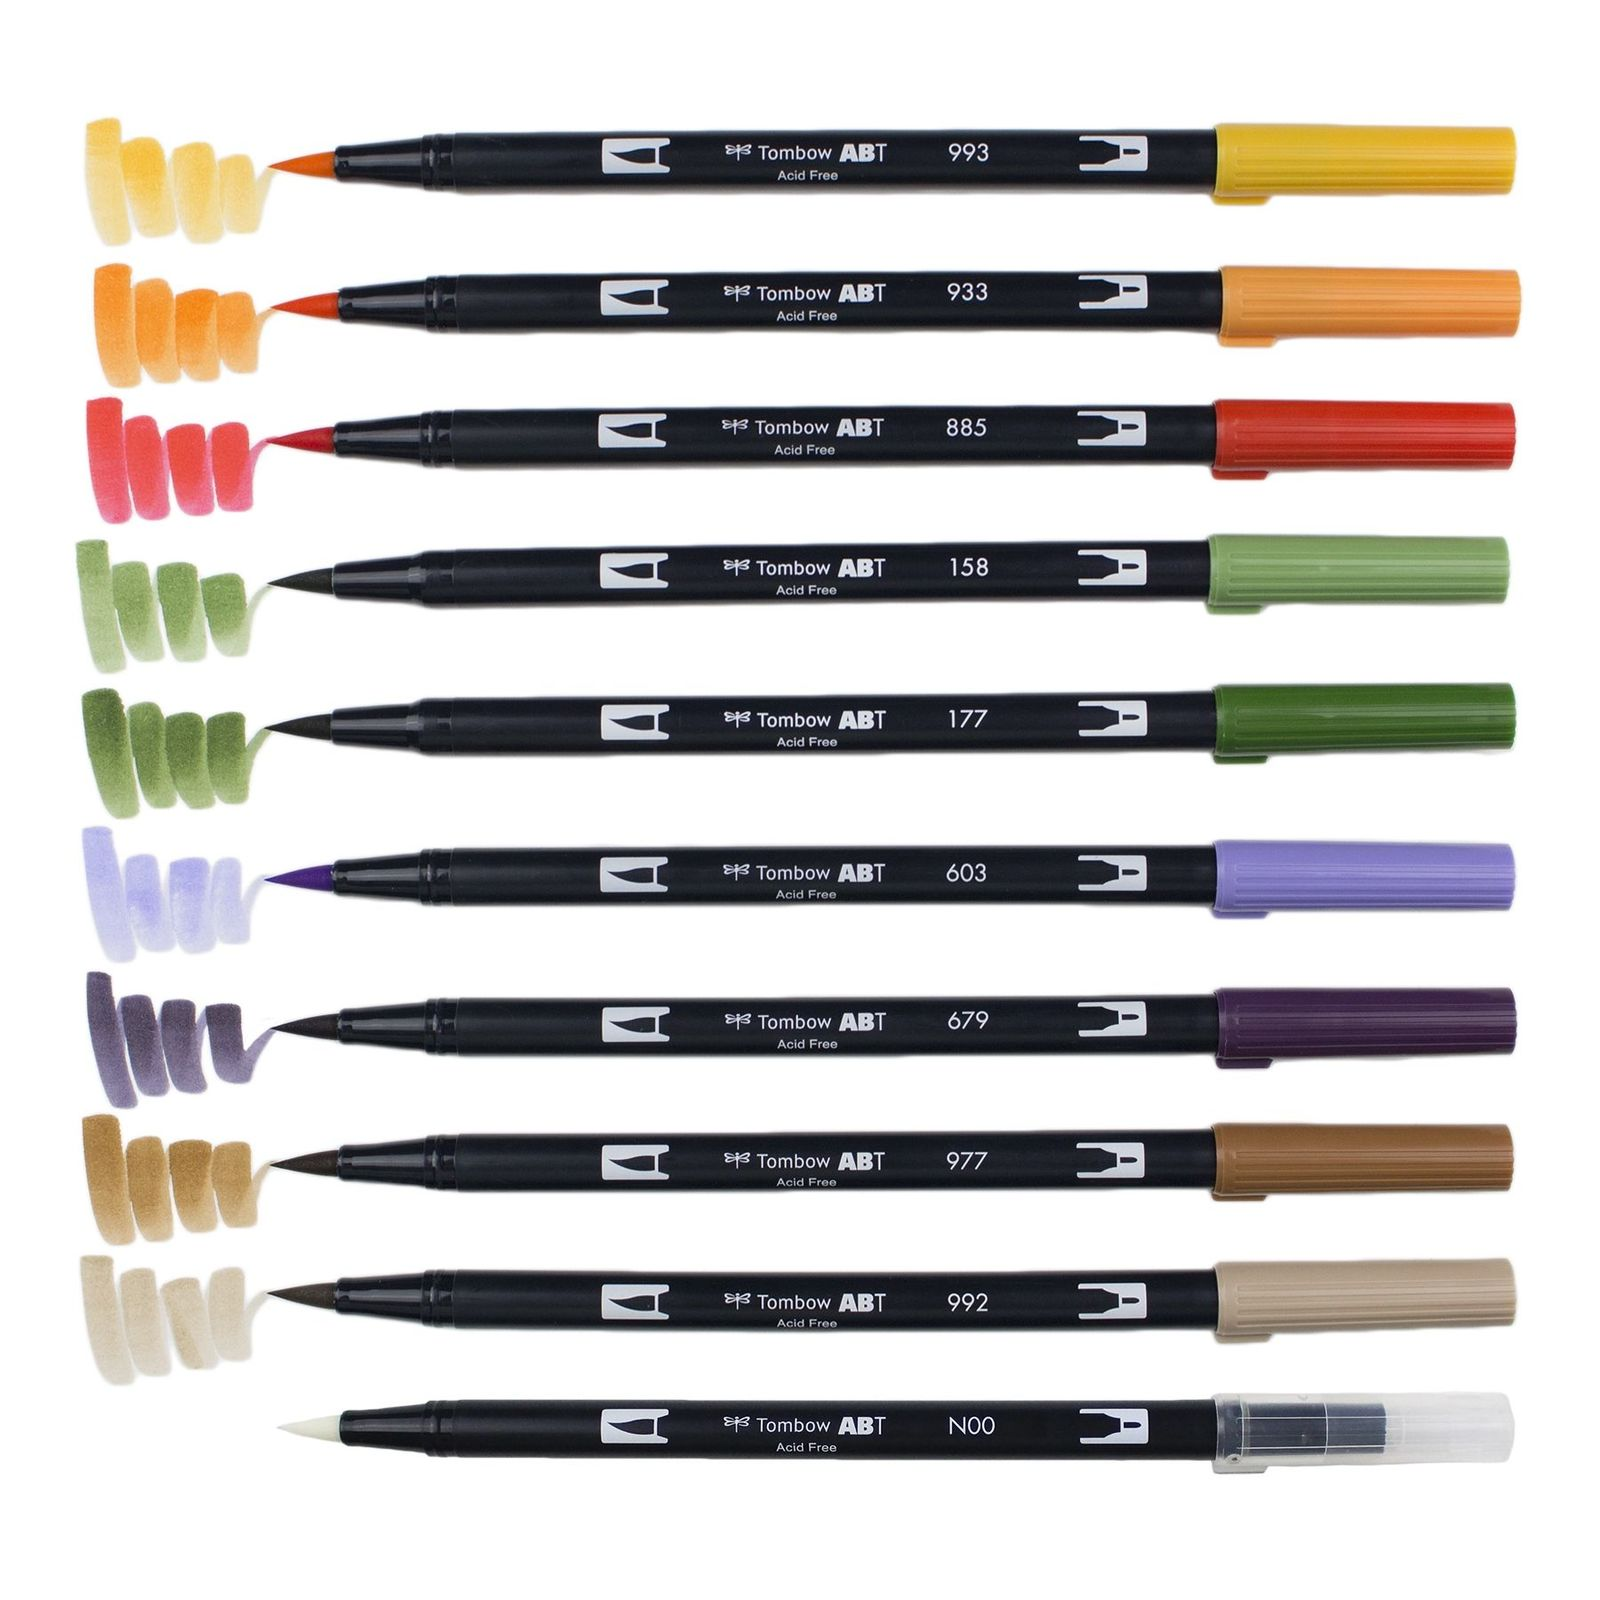 Primary image for Tombow ABT Dual Brush Pens (Brush Tip + 0.8mm Fine Tip) 10-Color Set, Secondary,